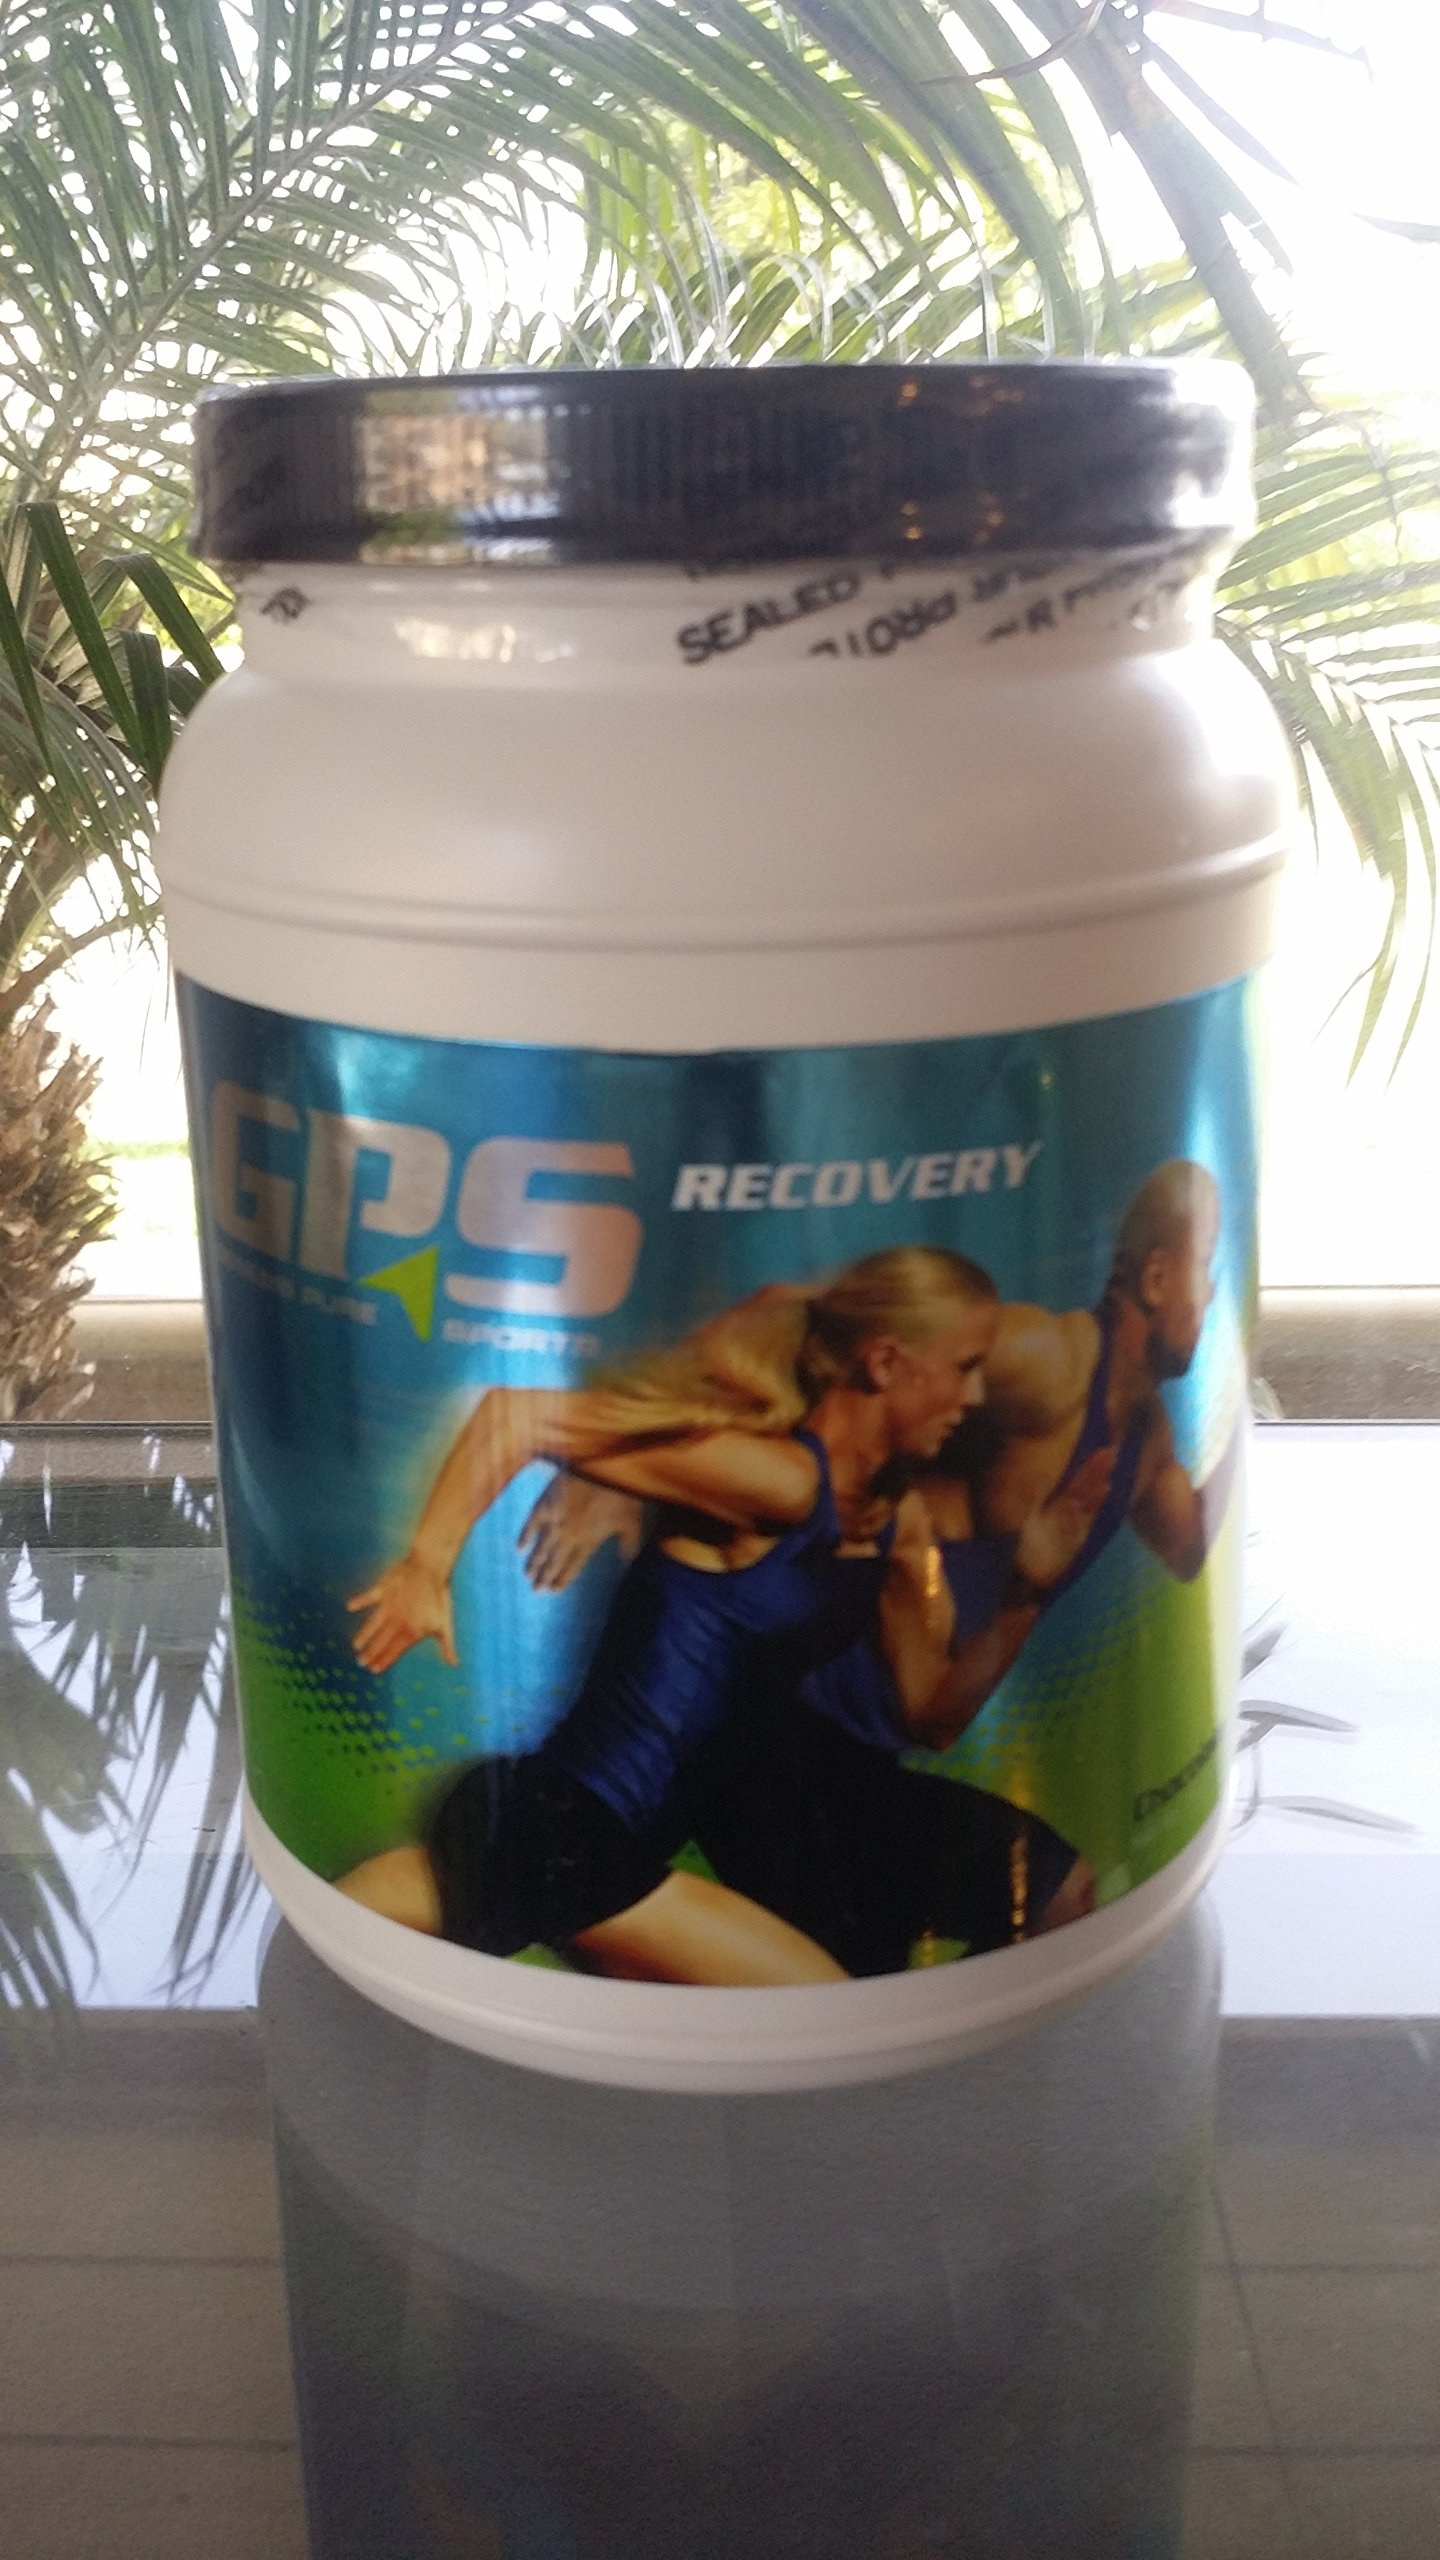 Genesis Pure Sports Recovery Chocolate Protein/Nutrients Mix Net Wt. 1lb 10.5oz(750g)